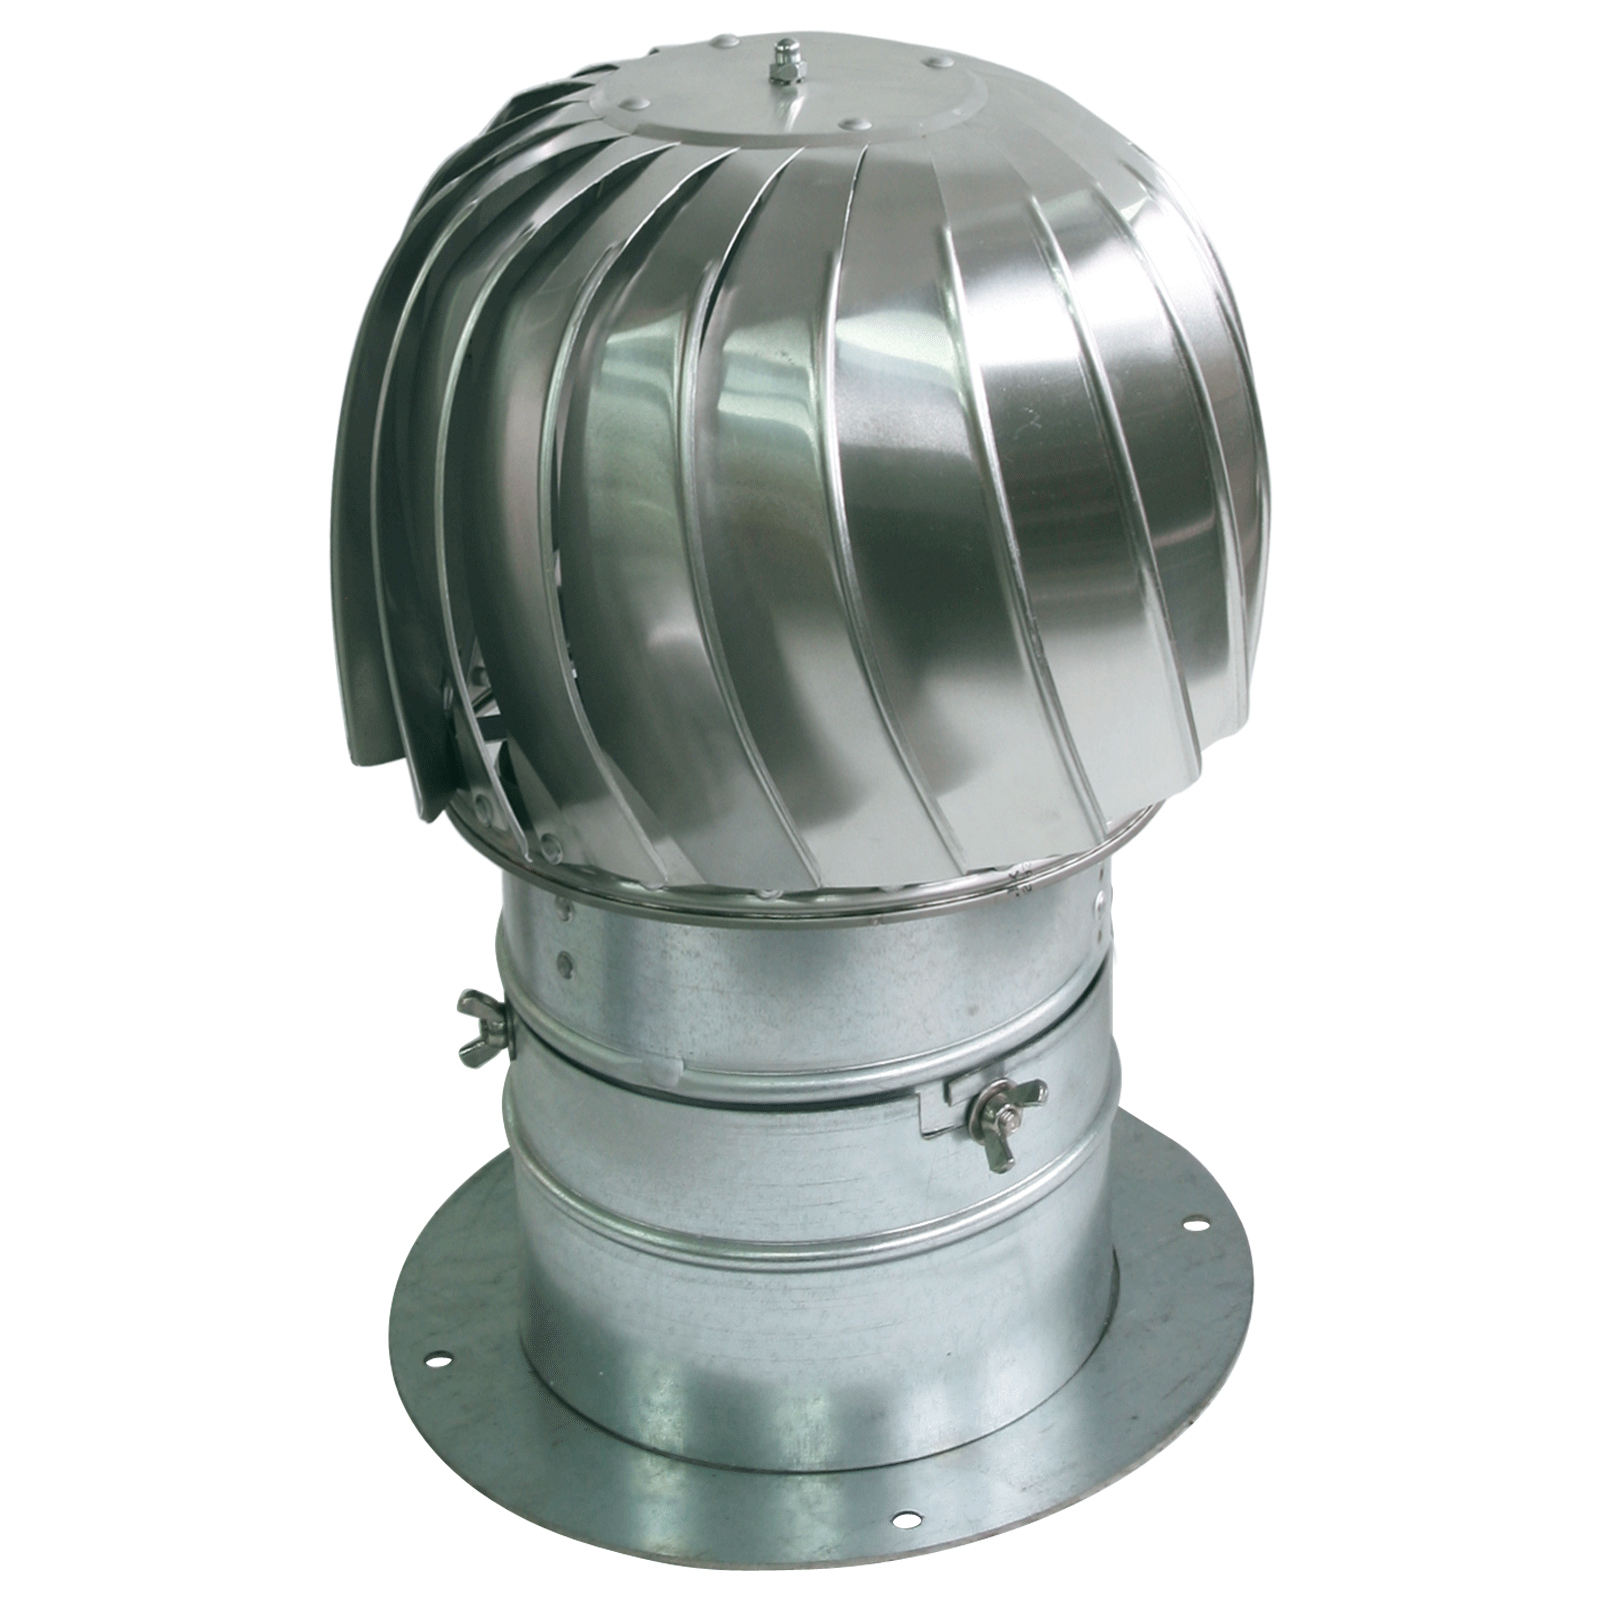 500mm Spinning Chimney Cowl With Collar Aluminum Ventilation